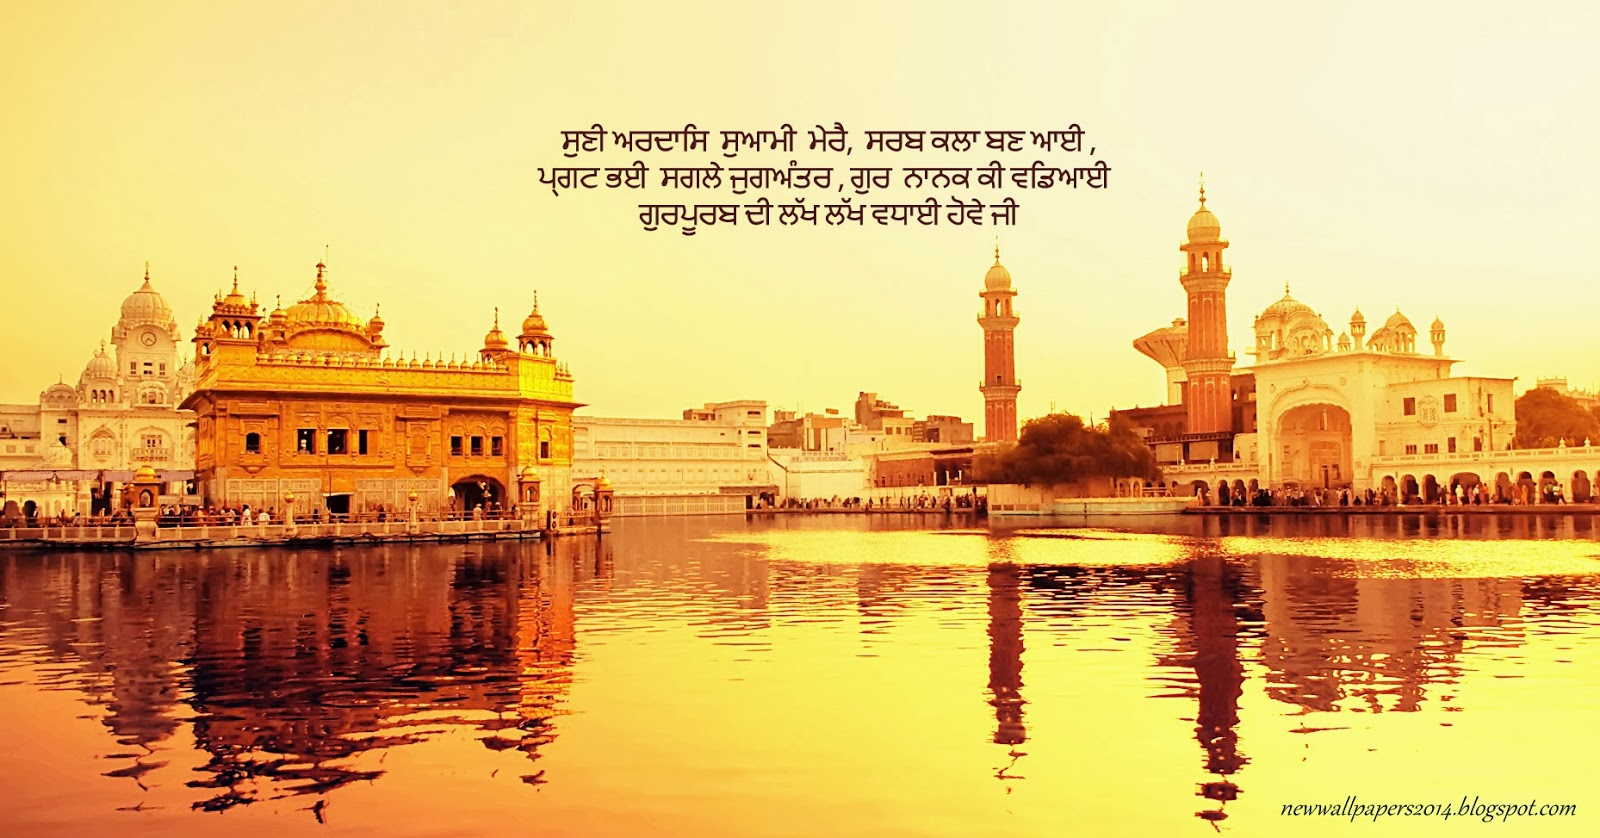 Shri Harmandir Sahib Wallpaper - WallpaperSafari